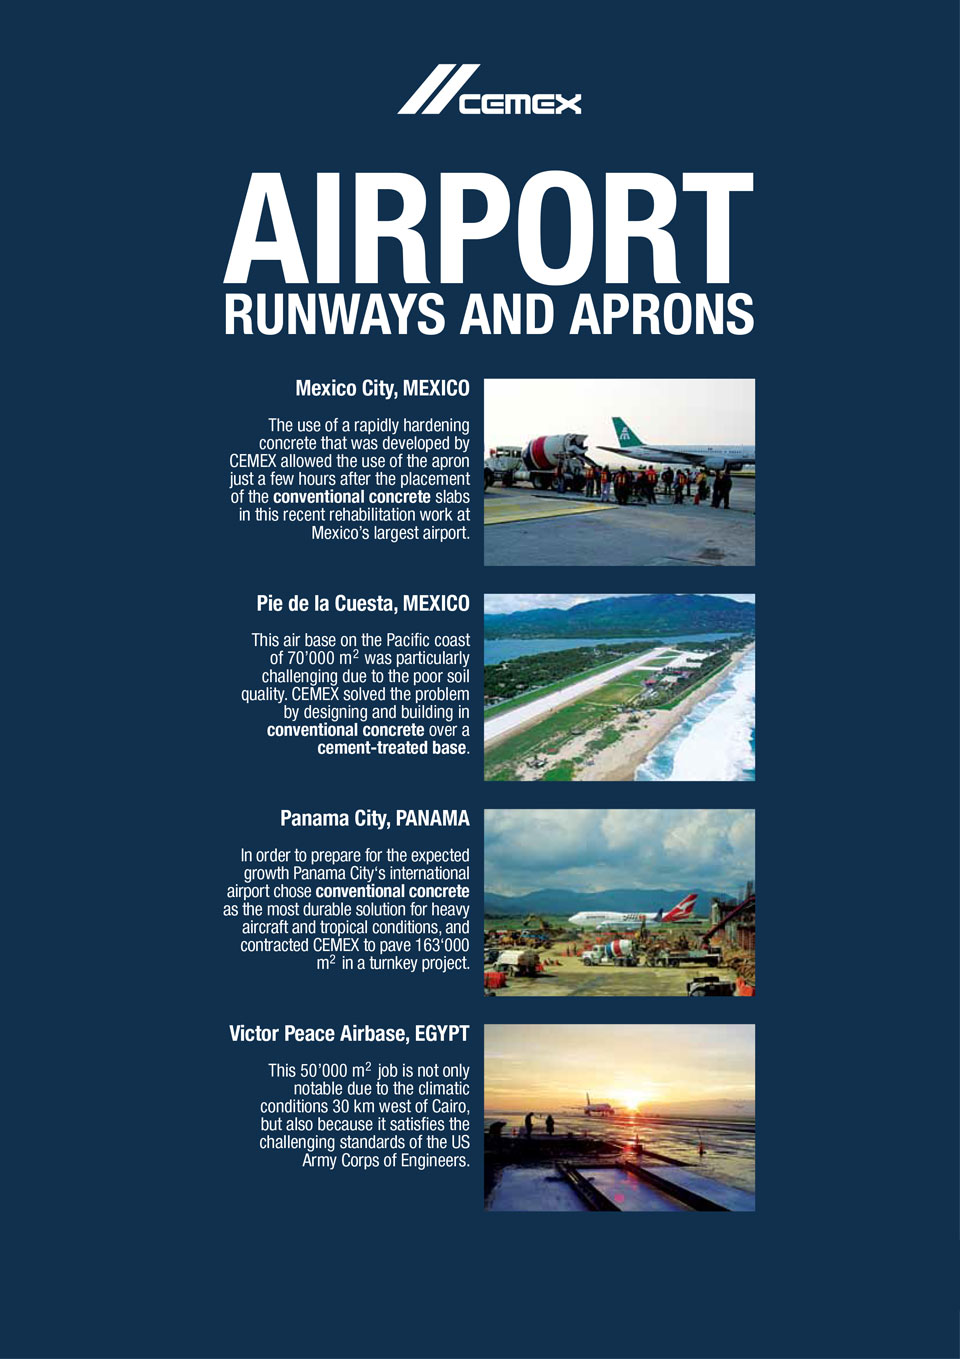 the image shows several airports CEMEX has helped with the construction of